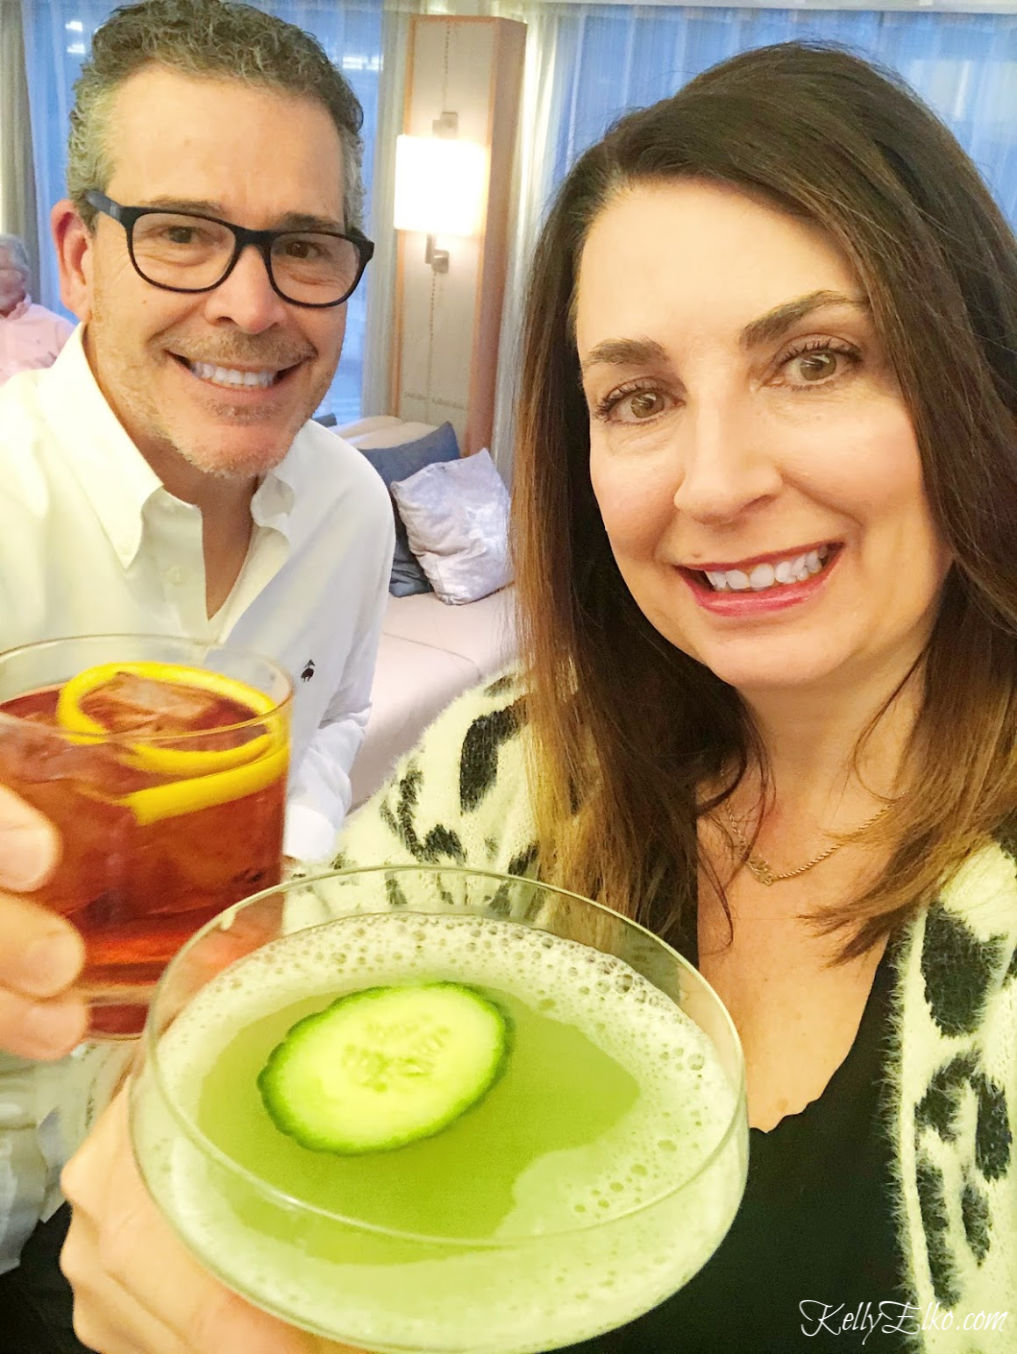 Kelly and Steve enjoying a Negroni and a Cucumber Martini kellyelko.com #cocktails #negroni #cucumbermartini #cocktailhour #happyhour